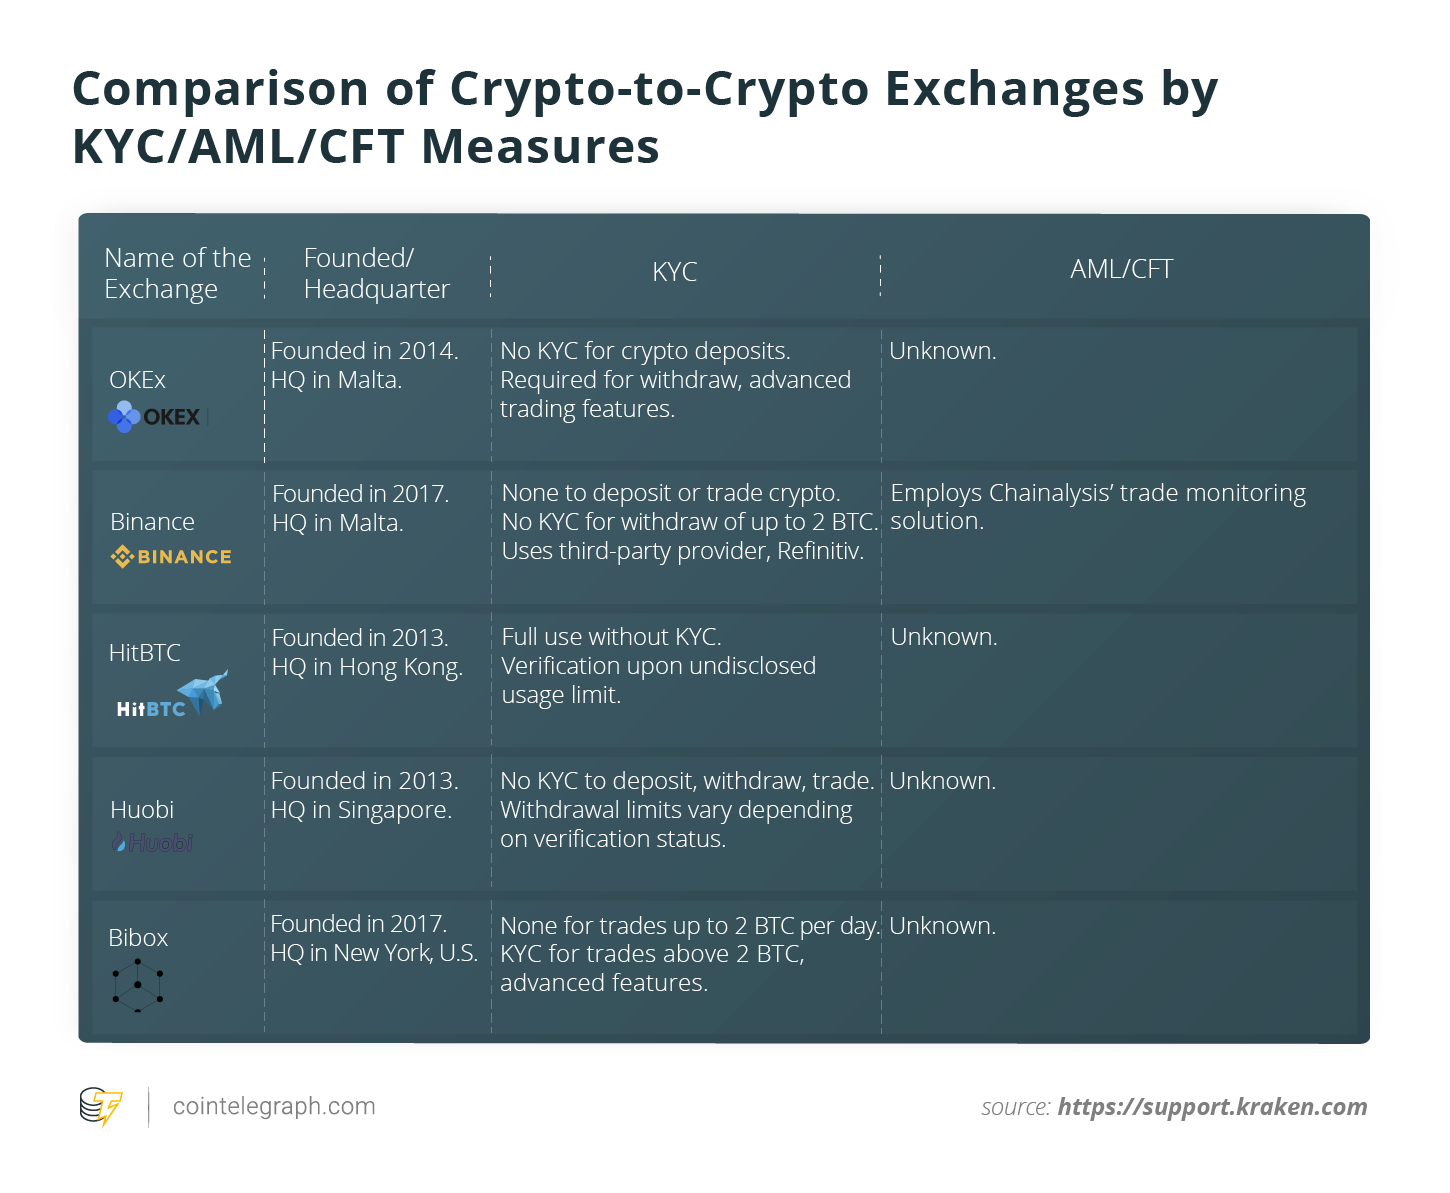 Crypto-to-crypto exchanges